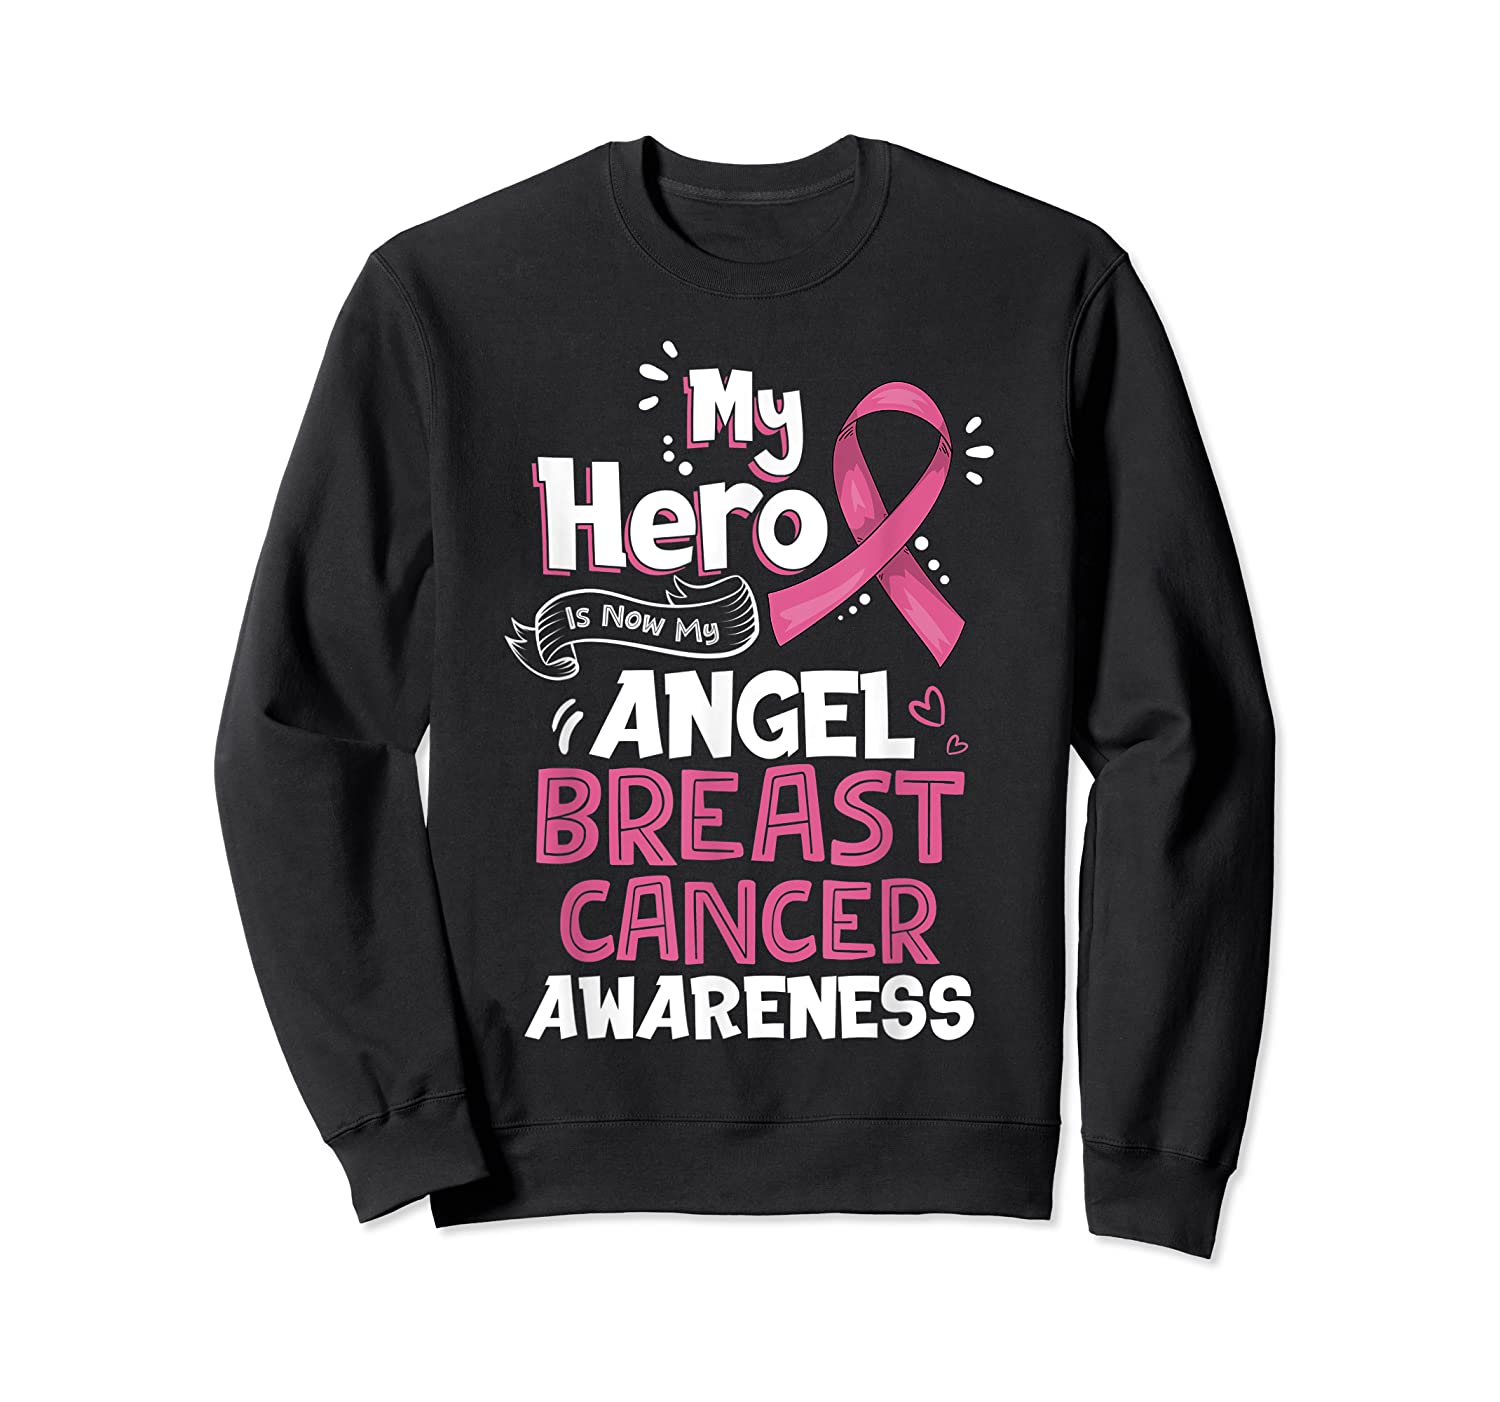 My Hero Is Now My Angel Breast Cancer Awareness Tshirt Gifts T Shirt Crewneck Sweater